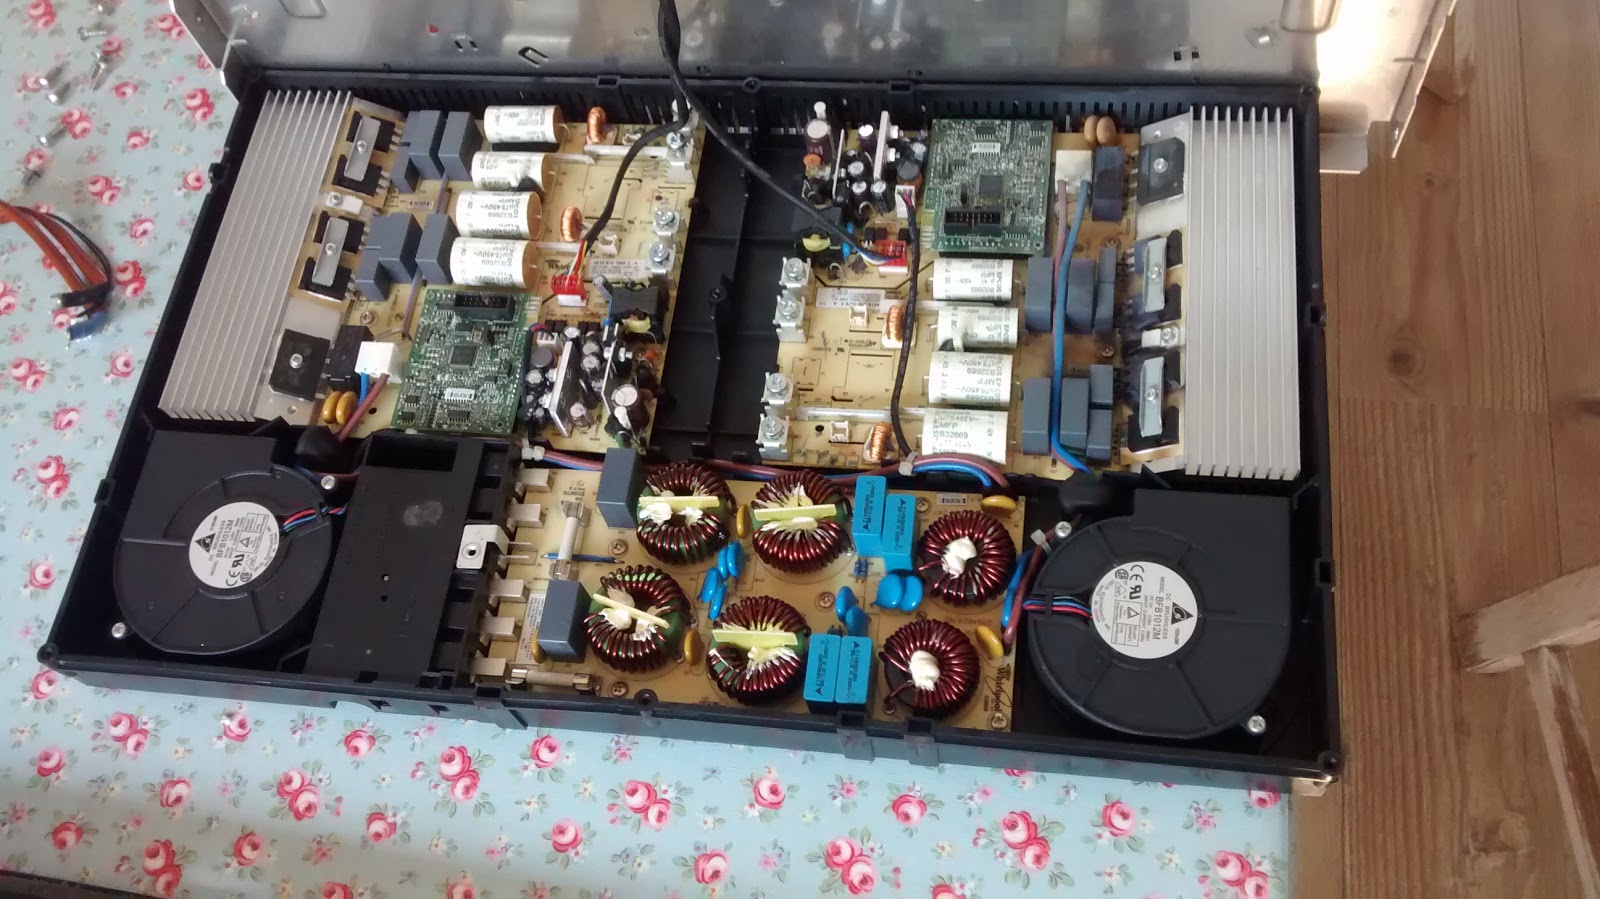 hight resolution of wiring diagram for induction hob